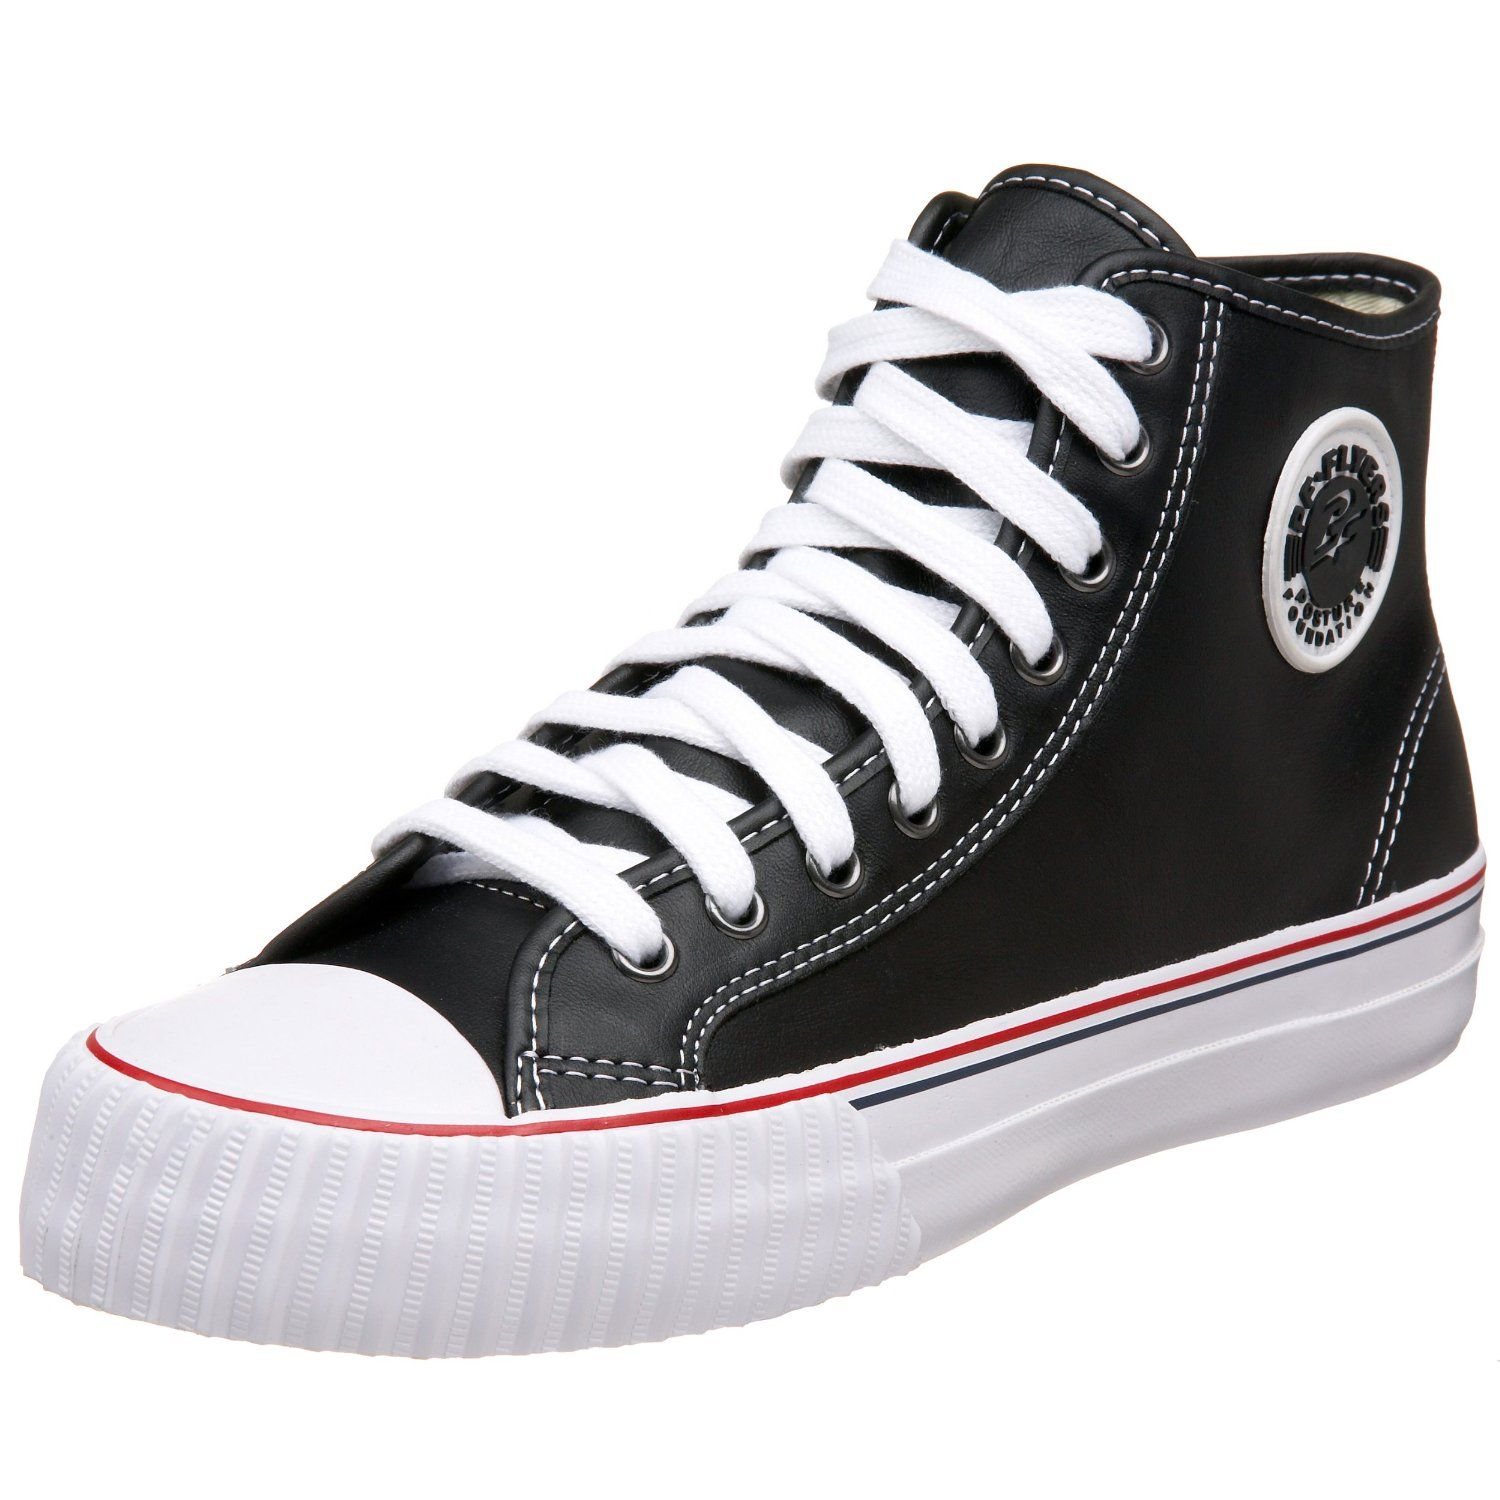 Great basic shoes and 50% Off! The leather detailing is durable and means these can be dressed up as well as down.